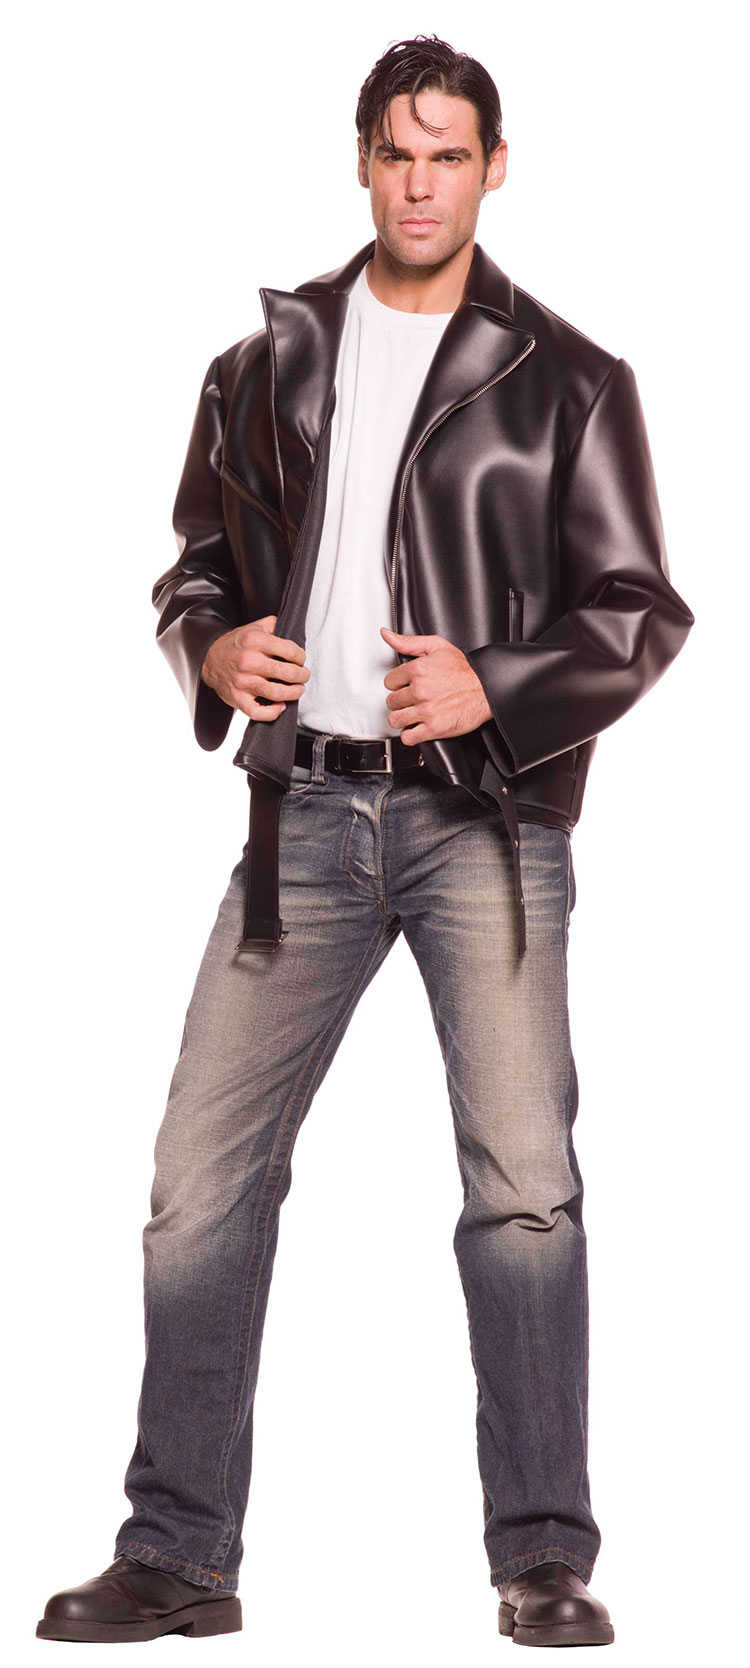 Greaser Costumes For Men Women Kids Parties Costume